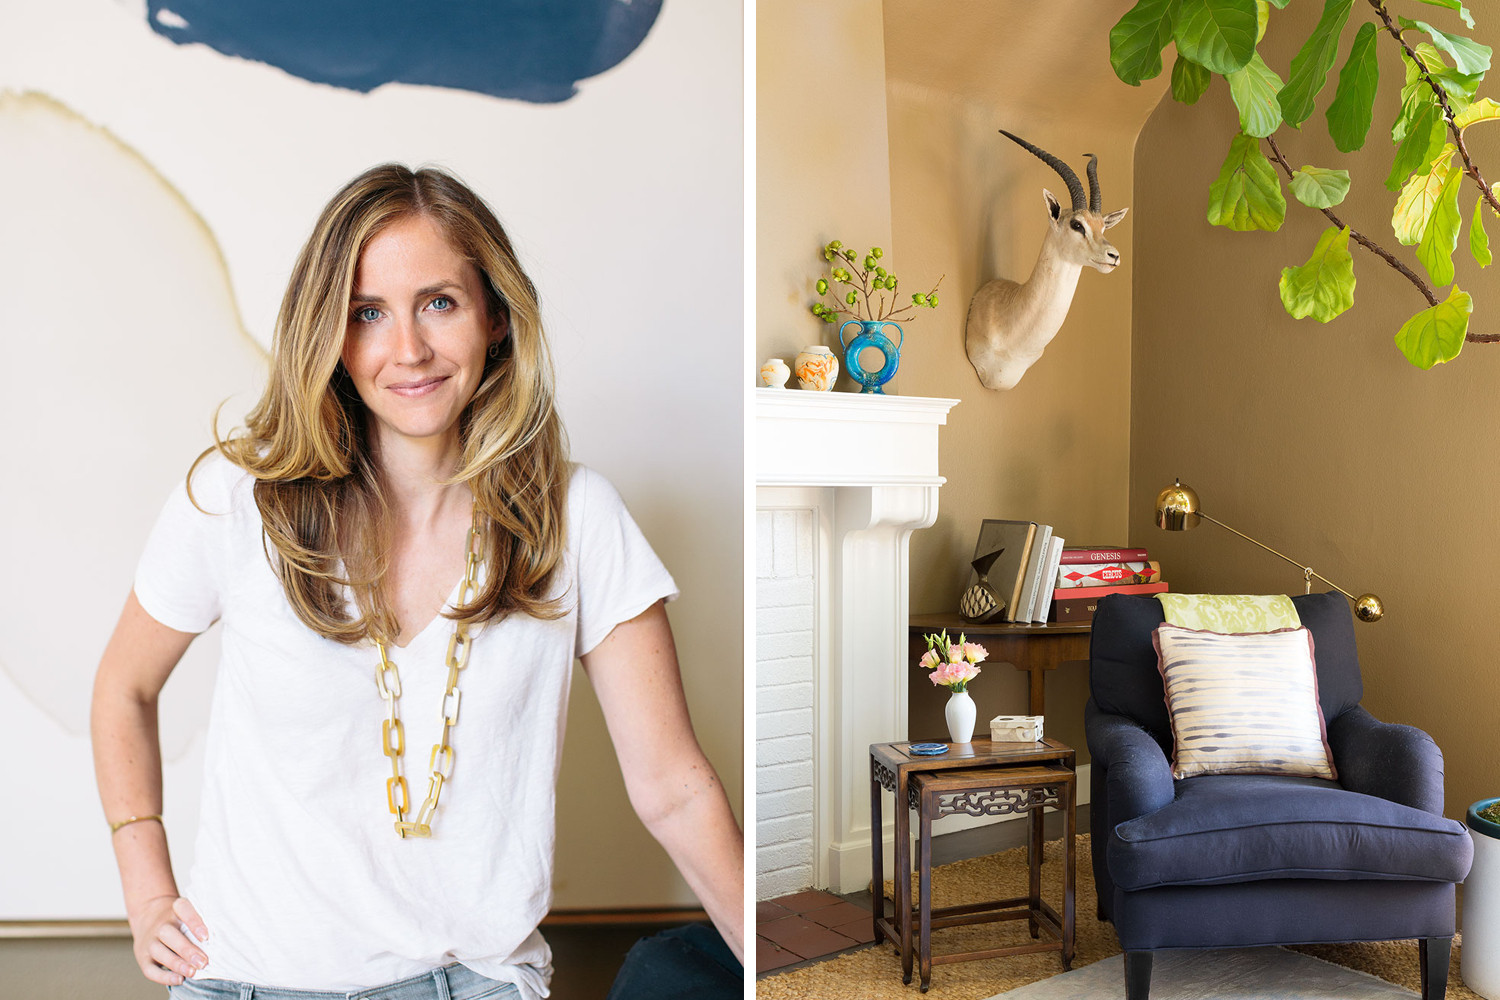 Chloe Warner of Redmond Aldrich Design at home in Oakland, California. Prop styling by Leila Nichols.